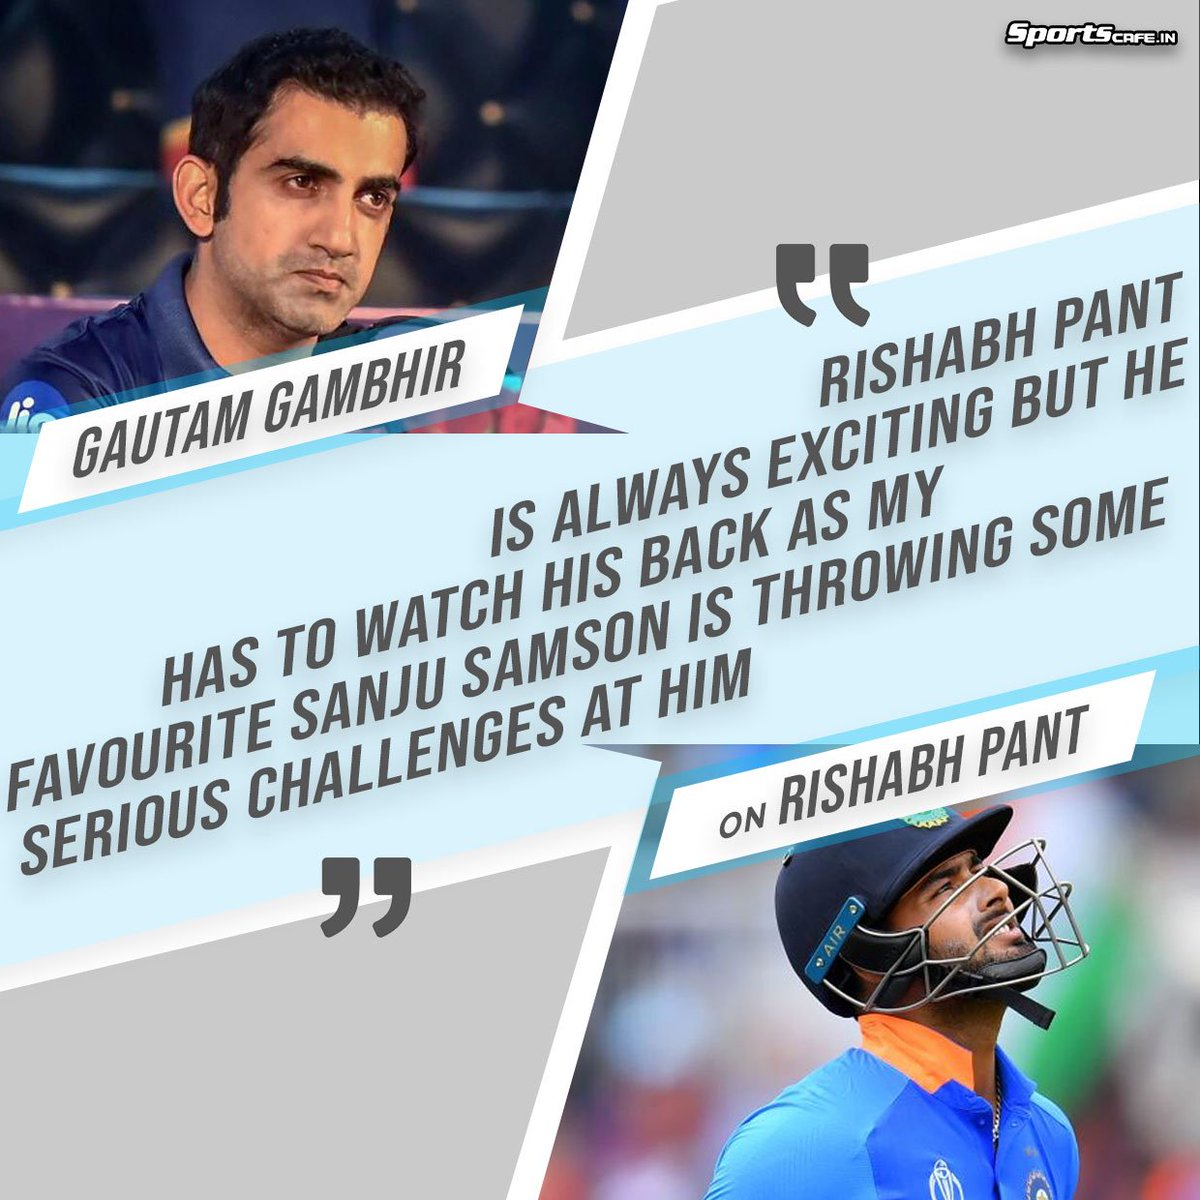 Gautam Gambhir indirectly criticizes Rishabh Pant by backing Sanju Samson on his side!!🧐🧐Check out the full story: http://bit.ly/2lUxnsy #WIvIND #INDvWI #TeamIndia #MSDhoni #rishabhpant